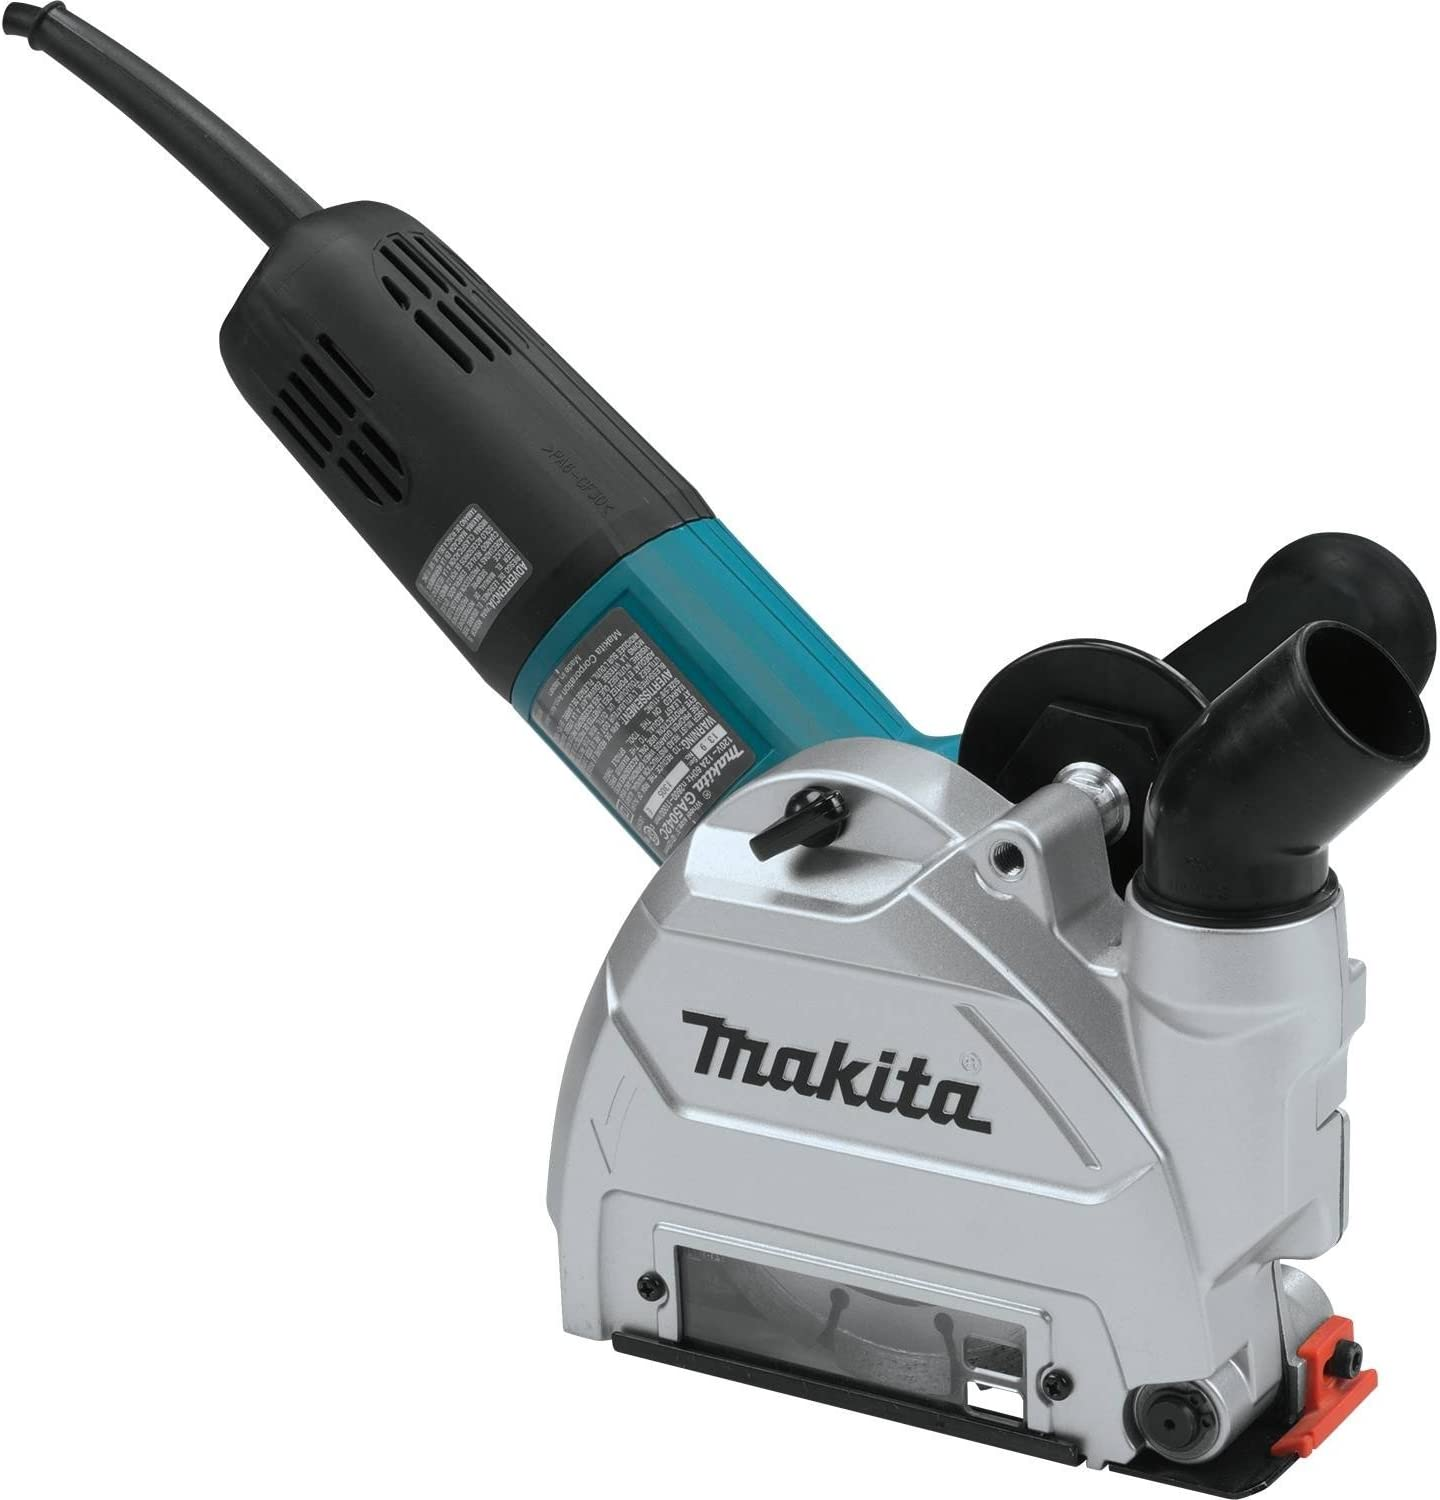 Makita GA5040X1 SJSII Angle Grinder with Tuck Point Guard, 5